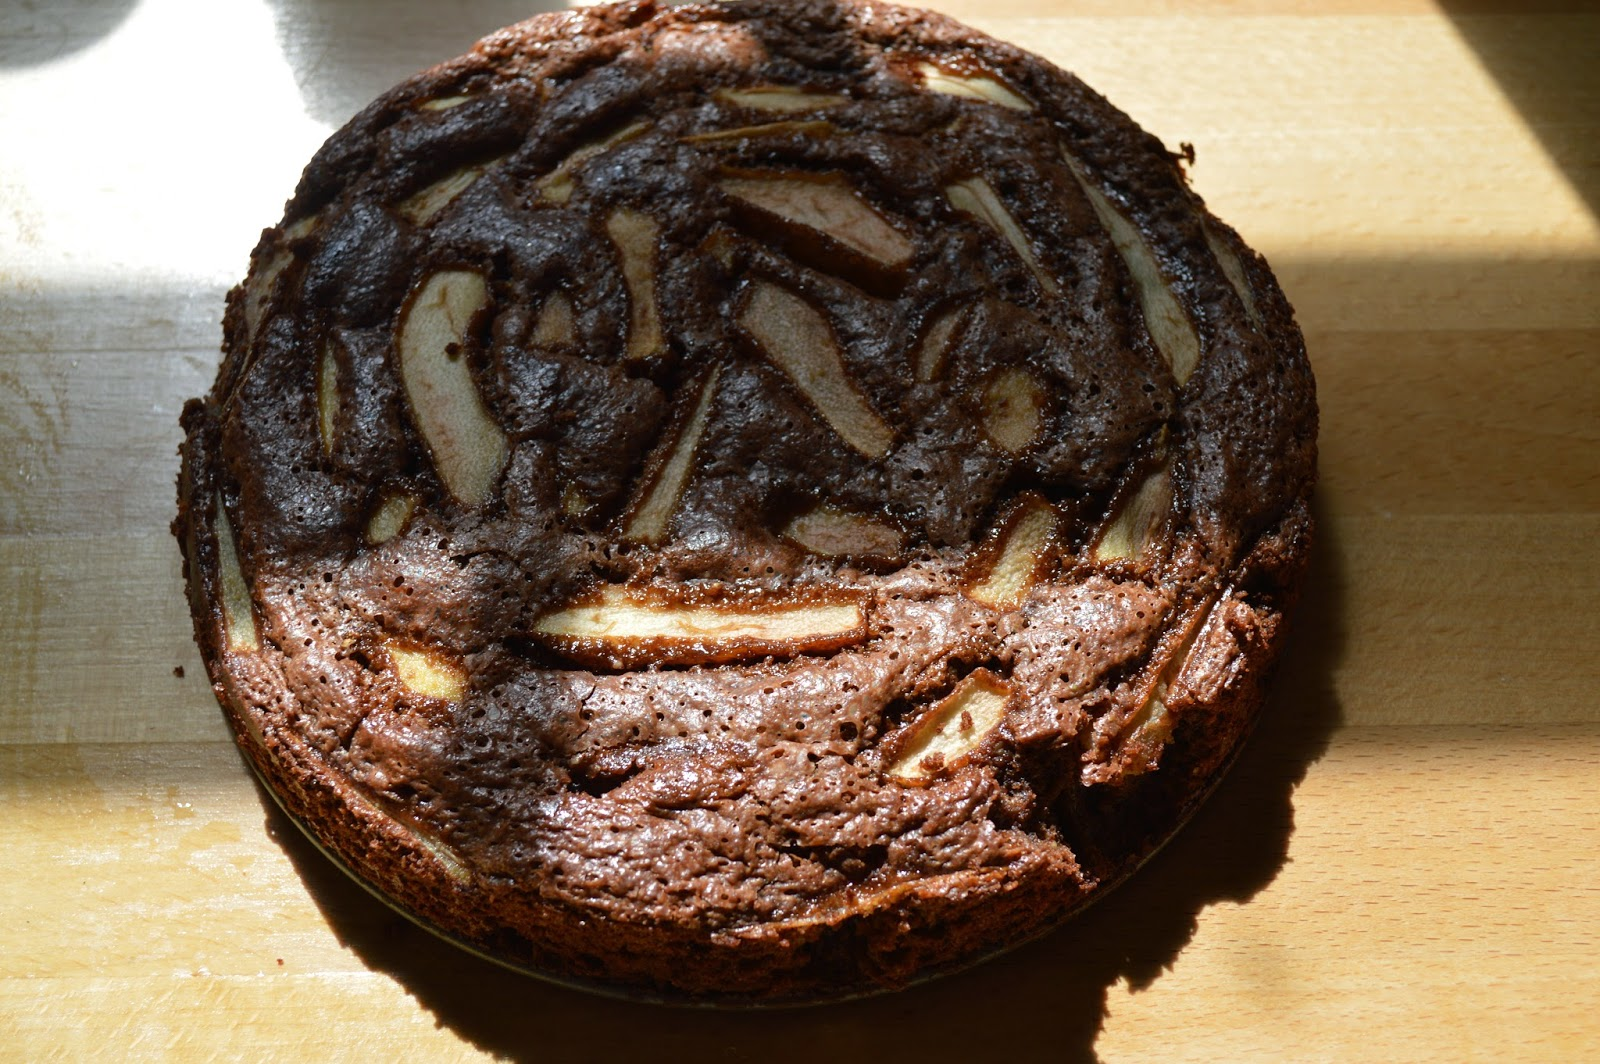 gluten free, pudding, desert, recipe, pear, chocolate, pistachio nuts, home made, easy, baking,